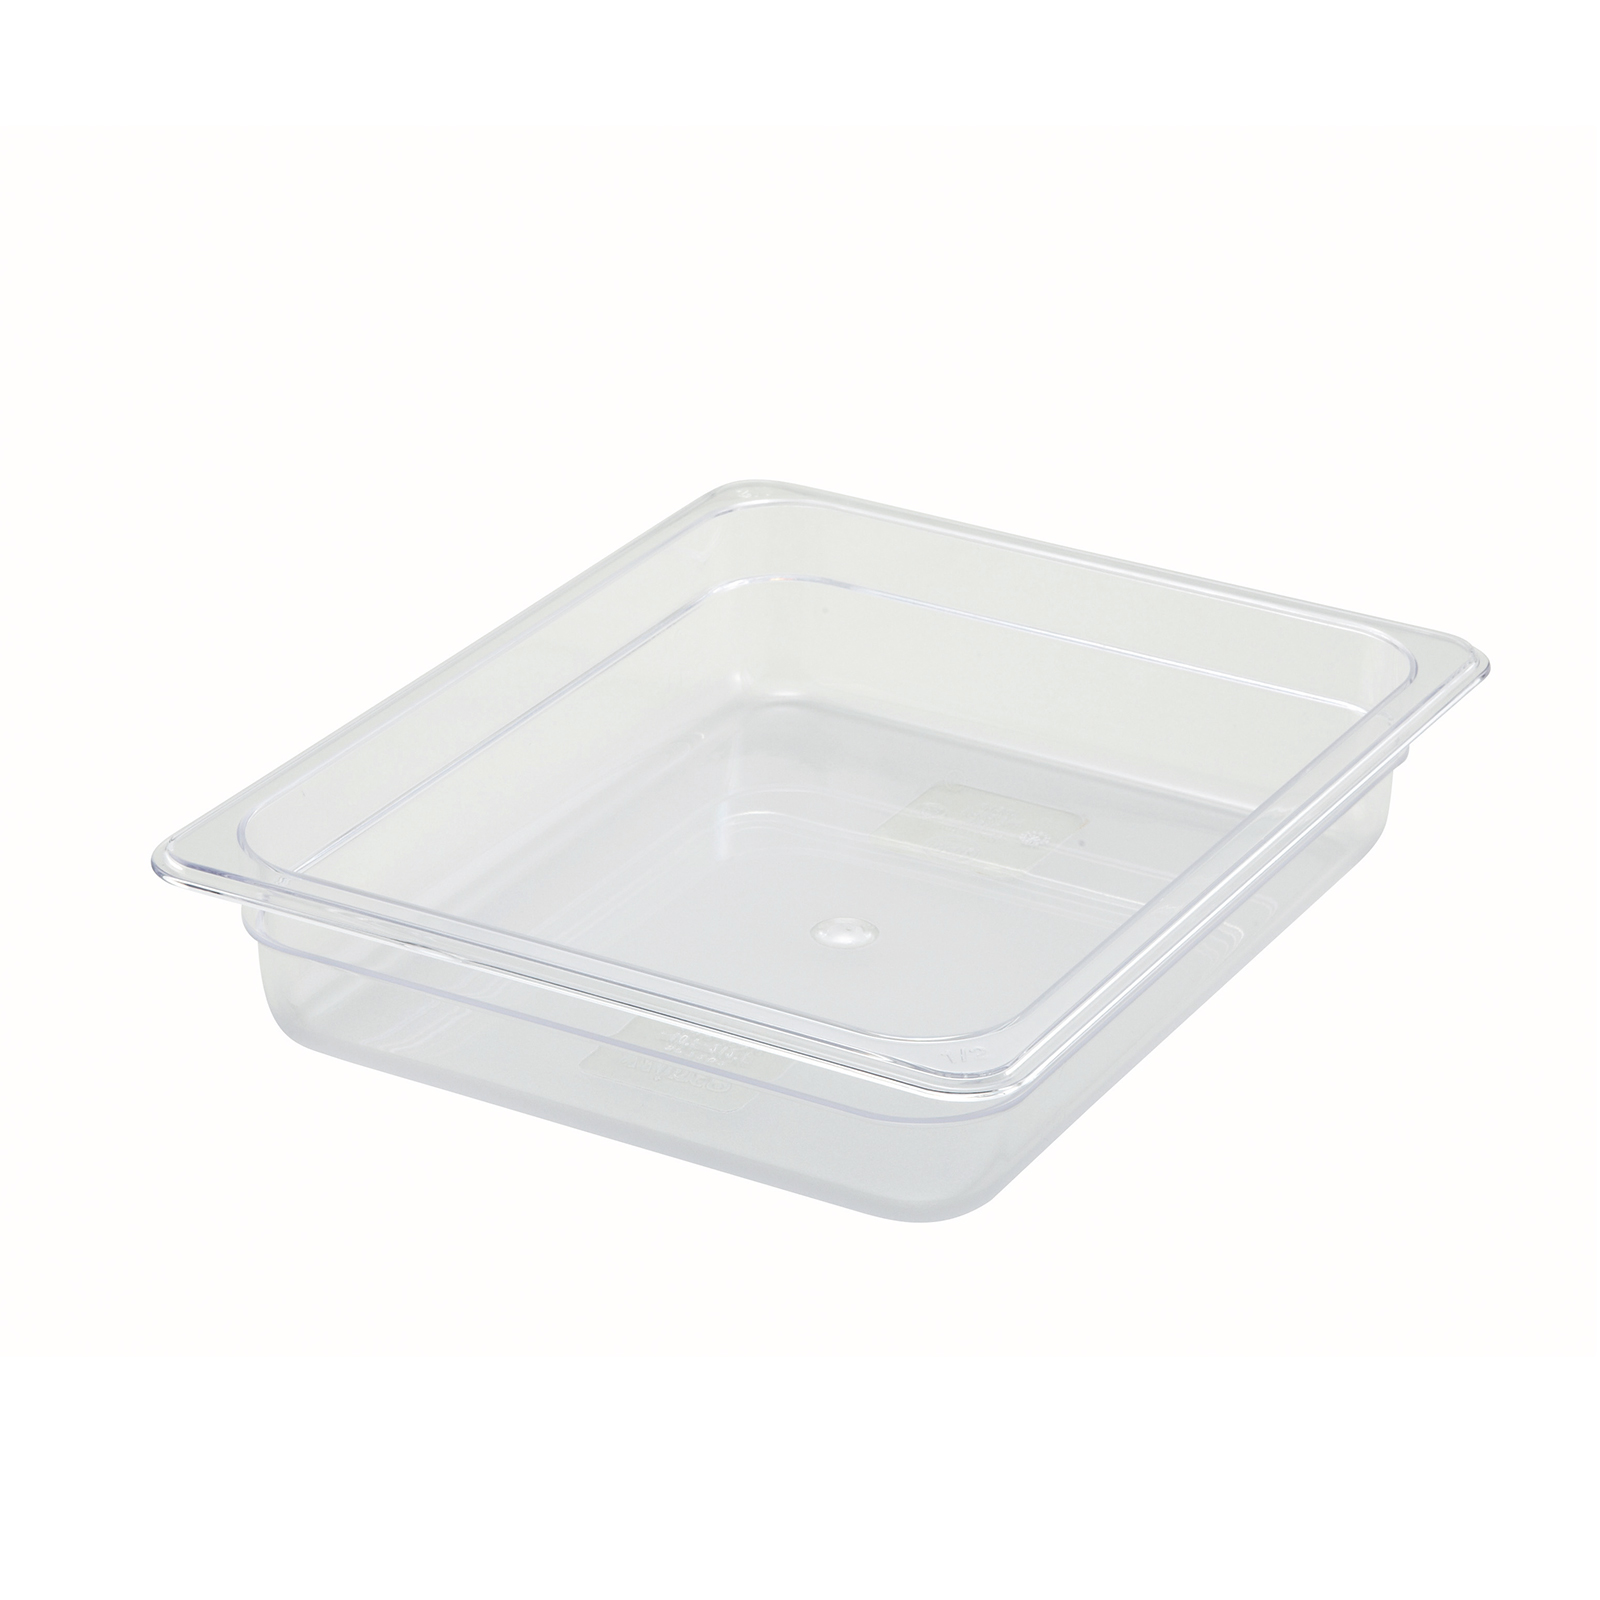 2410-017 Winco SP7202 food pan 1/2size 2.5inD, plastic